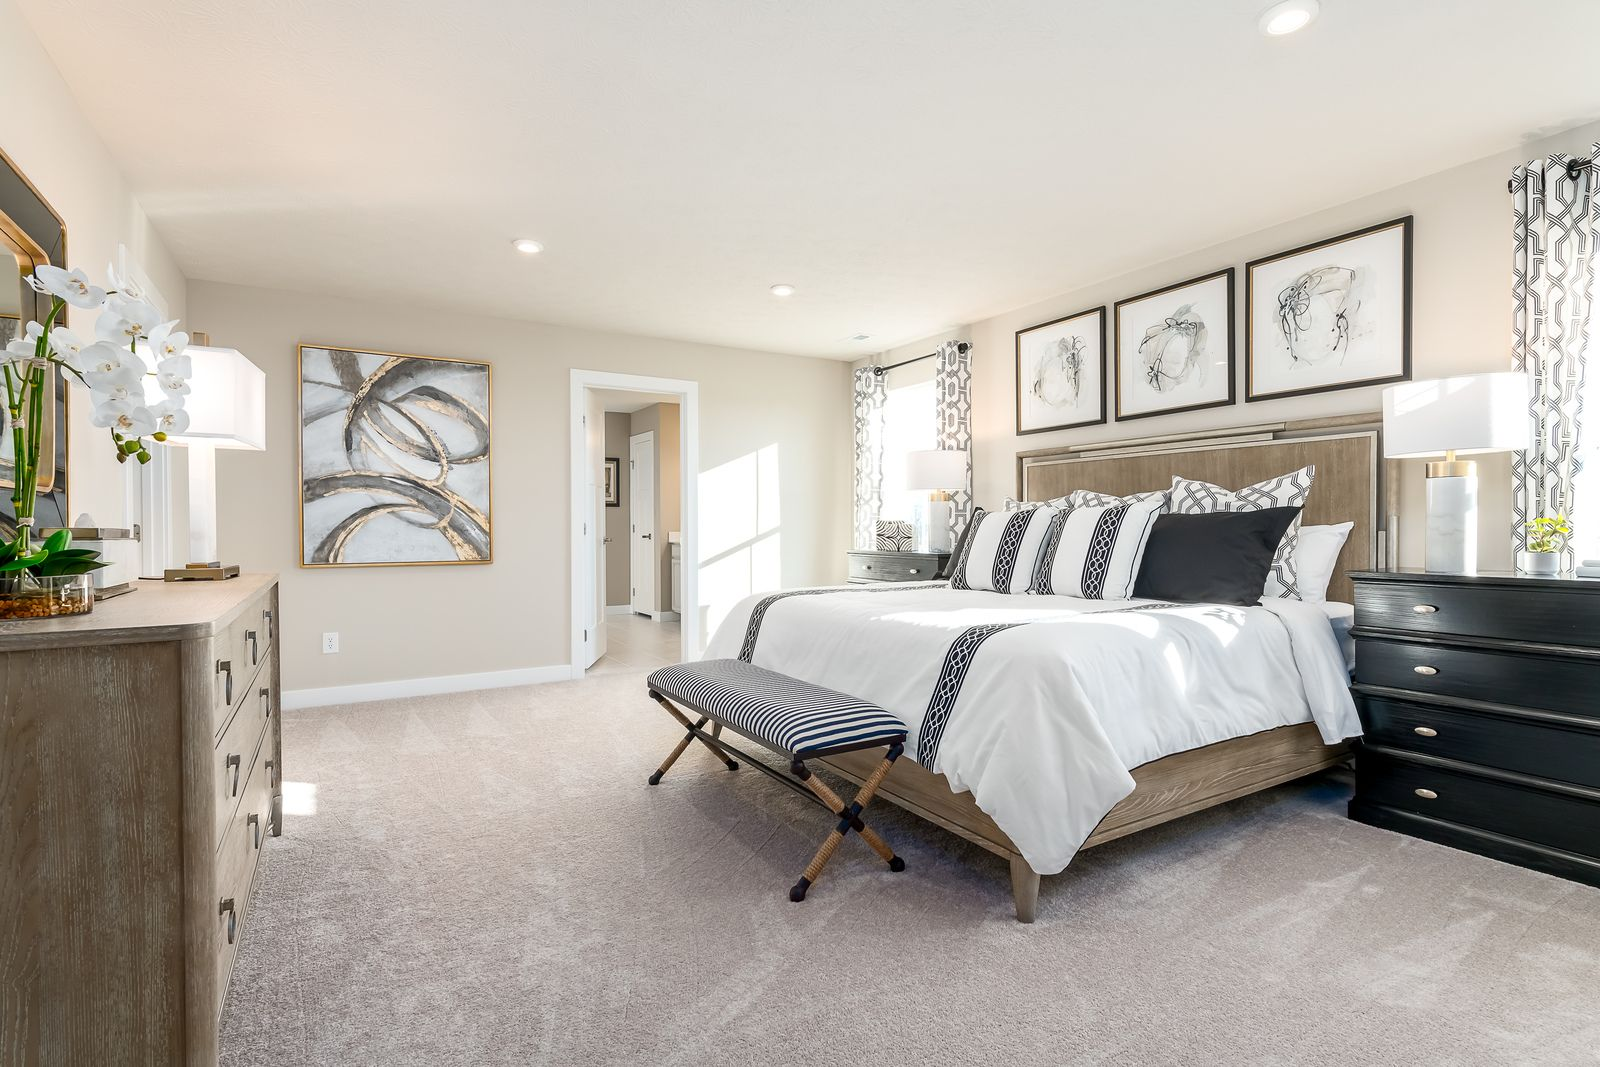 Bedroom featured in the Hudson By Ryan Homes in Charlotte, NC